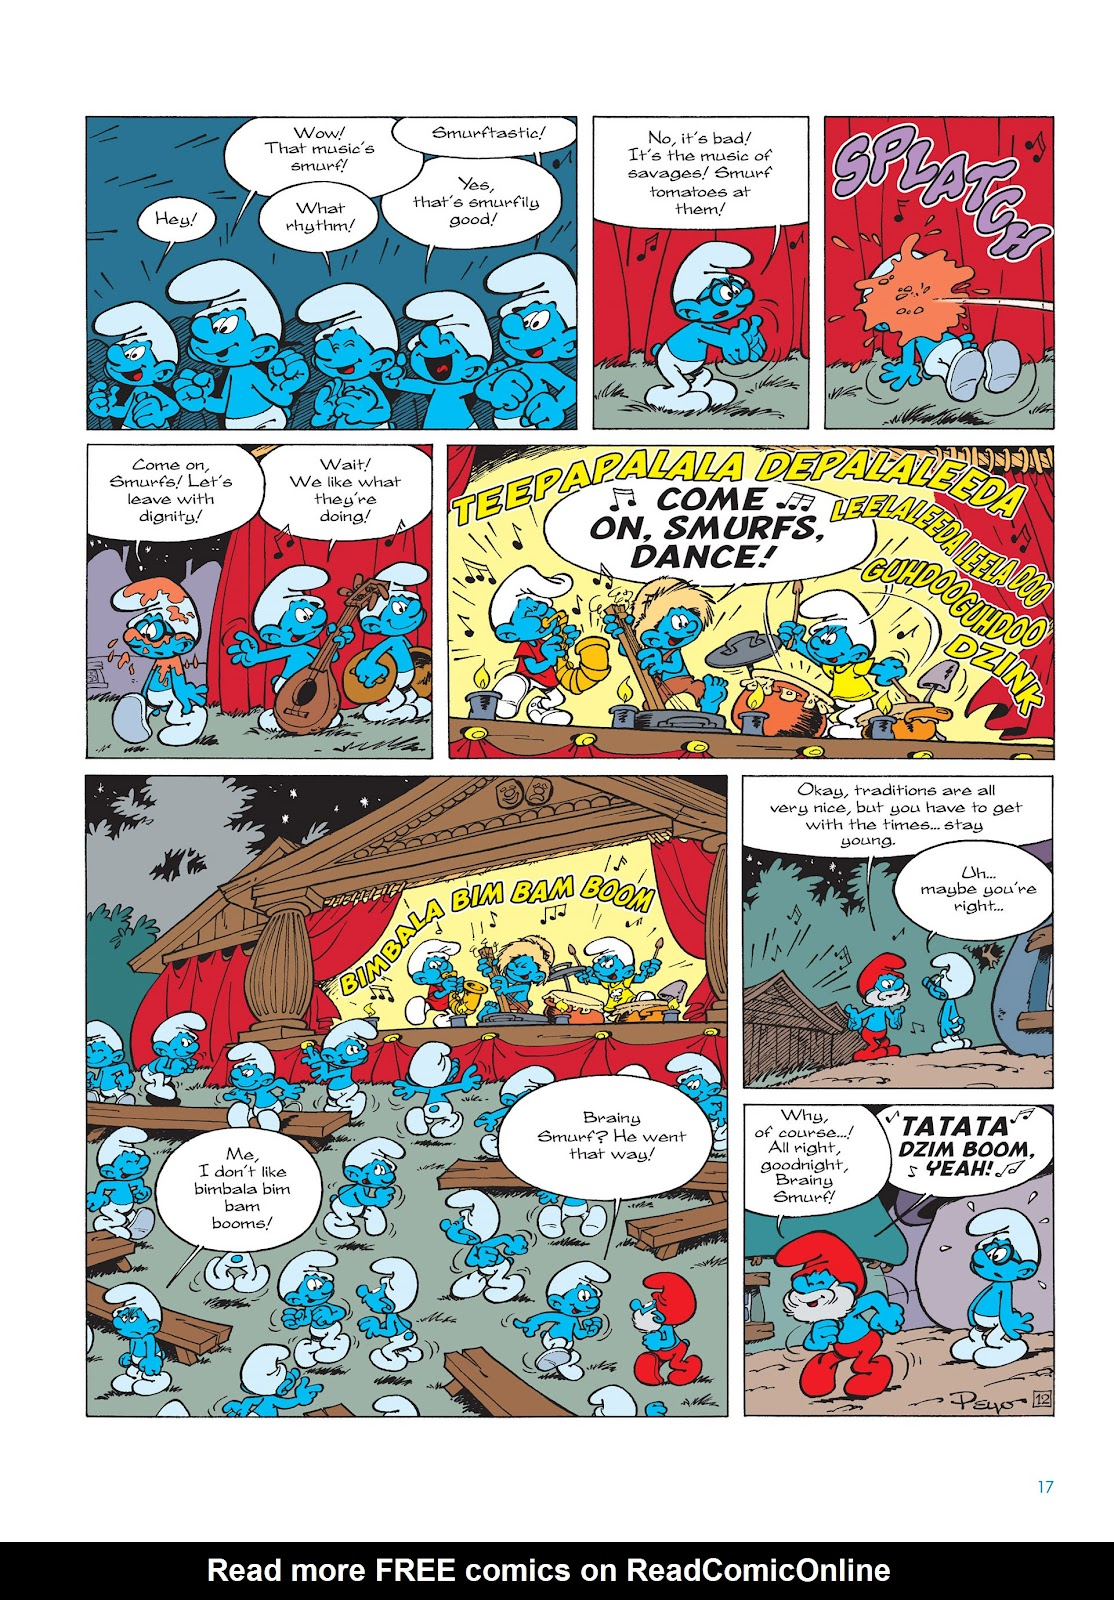 Read online The Smurfs comic -  Issue #15 - 18